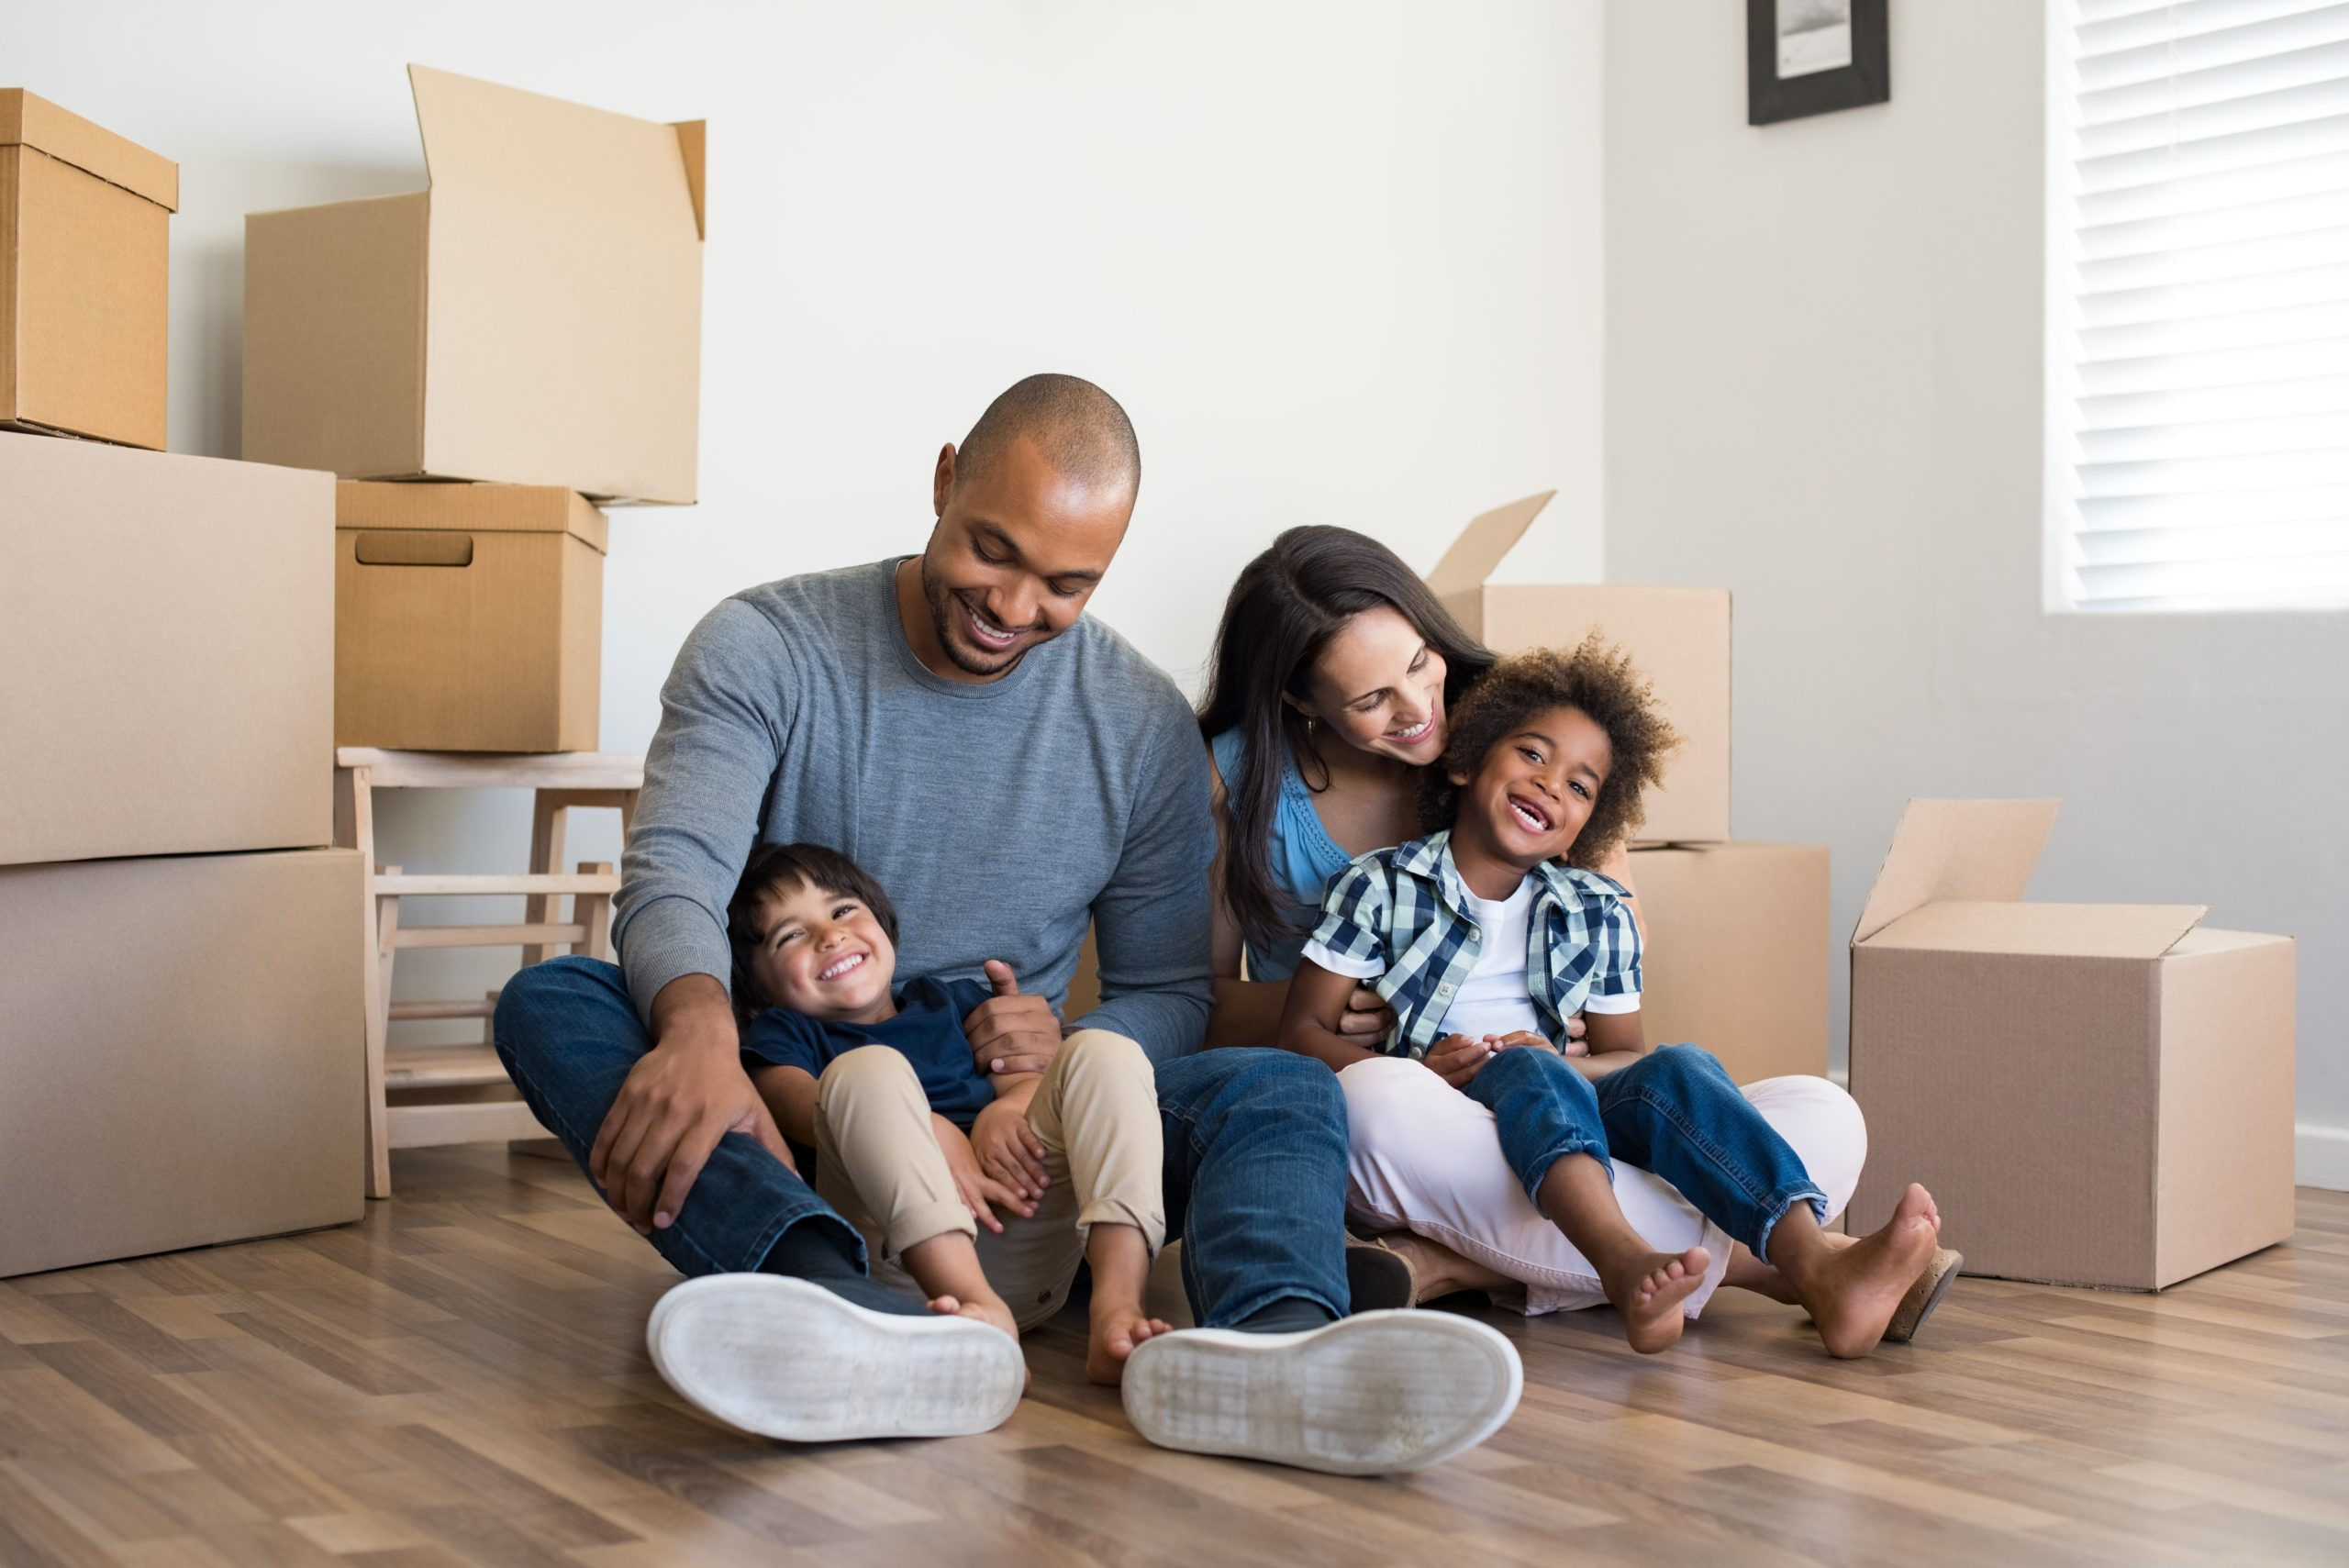 Happy family with two children having fun at new home